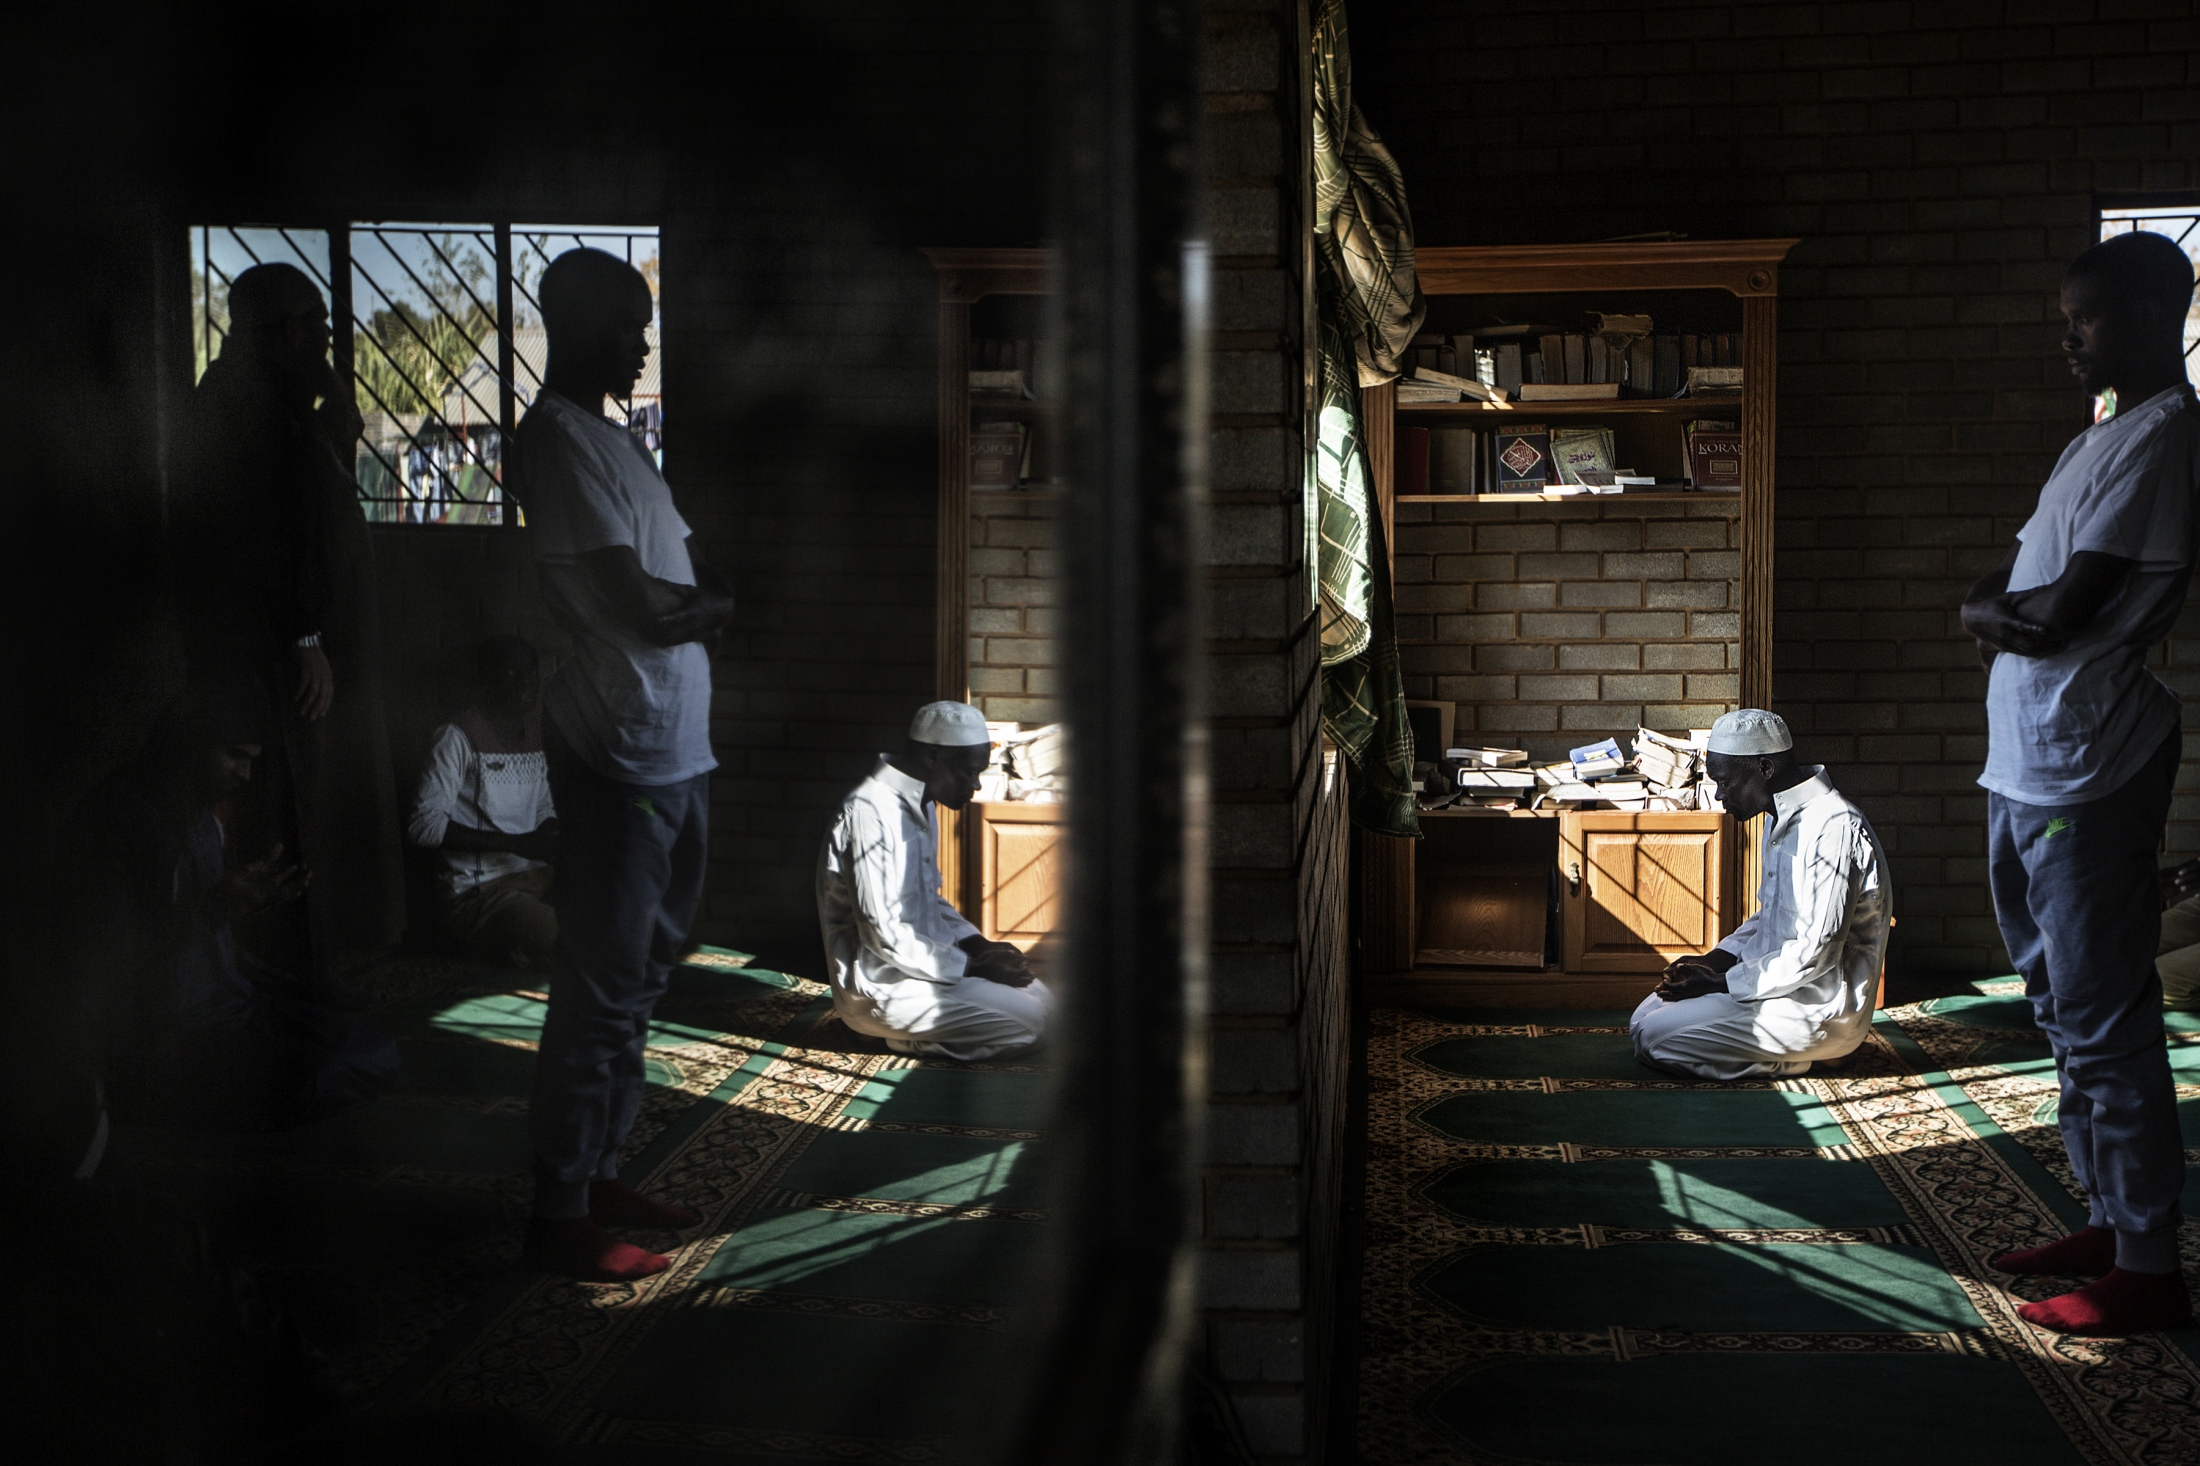 Men perform the second part of the midday prayer out of congregation at the Itirileng mosque in Pretoria during the holy month of fasting, Ramadan.   The masjid, built by a community based non-profit organisation called Neighbourly Needs runs many projects in the community,  including building low cost housing, education programs for children and adults and sustainable development feeding schemes and caters for a large migrant community most of whom are from Malawi.